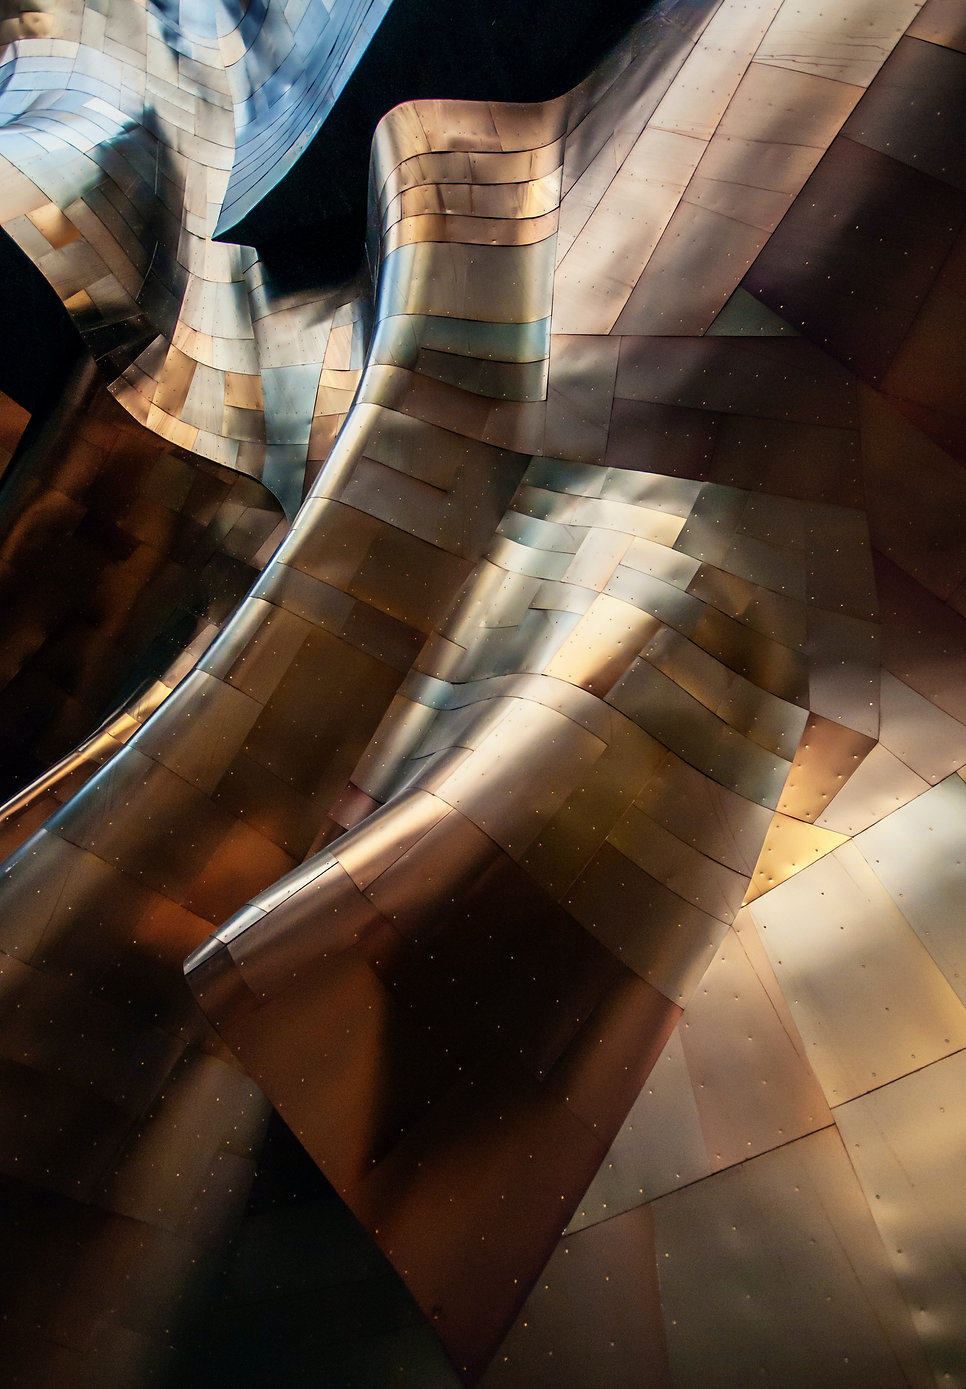 light-pattern-abstract-architecture-1375